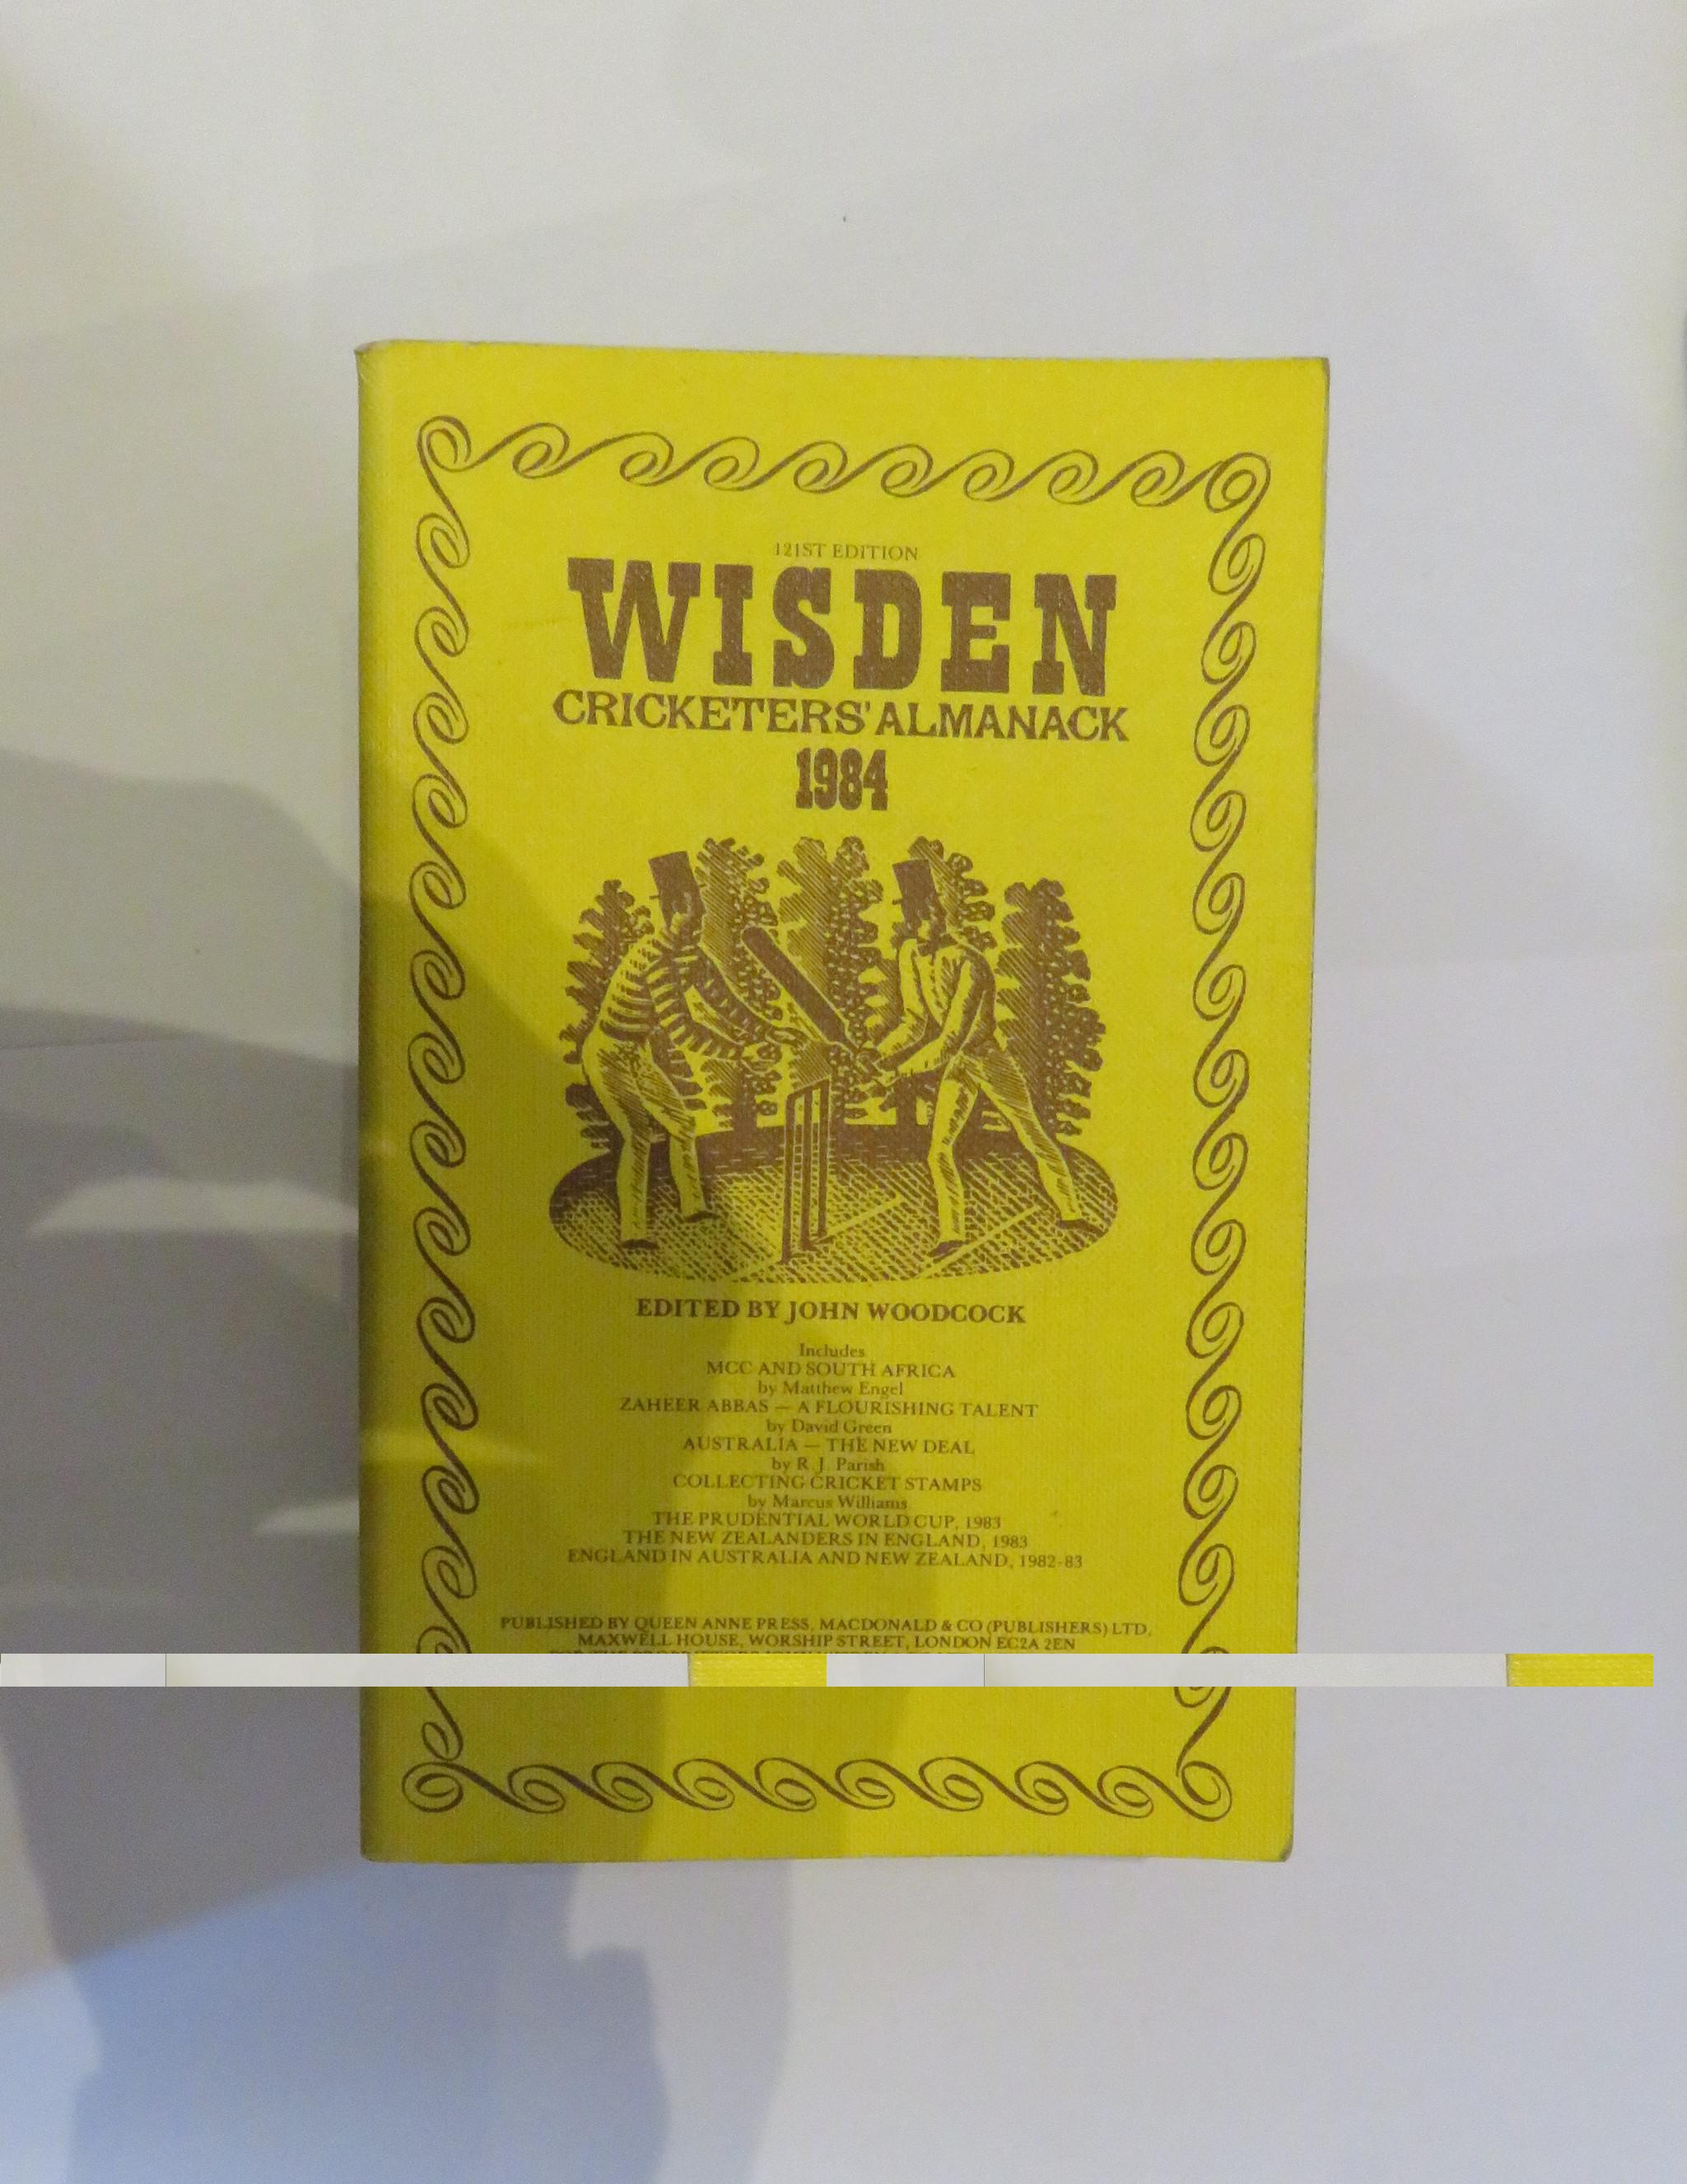 Wisden Cricketers' Almanack 1984